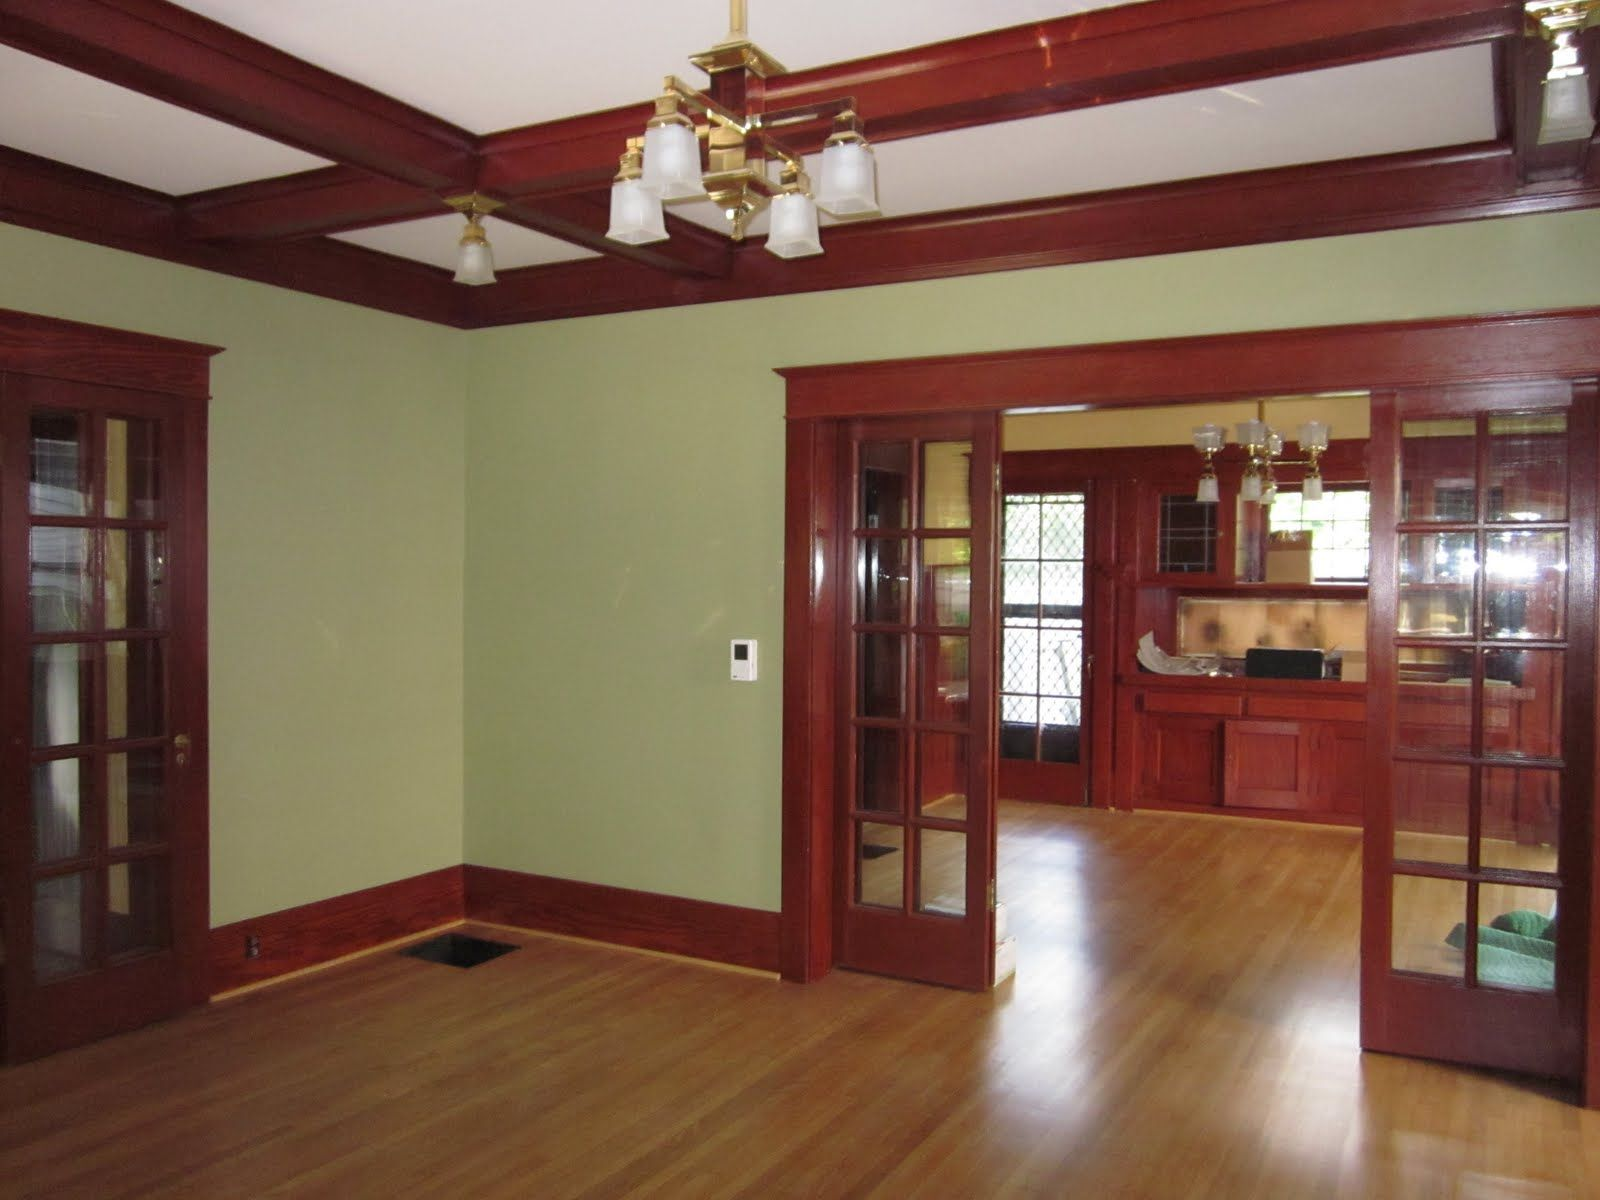 1920 historic house colors craftsman home interior paint on colors to paint inside house id=52935